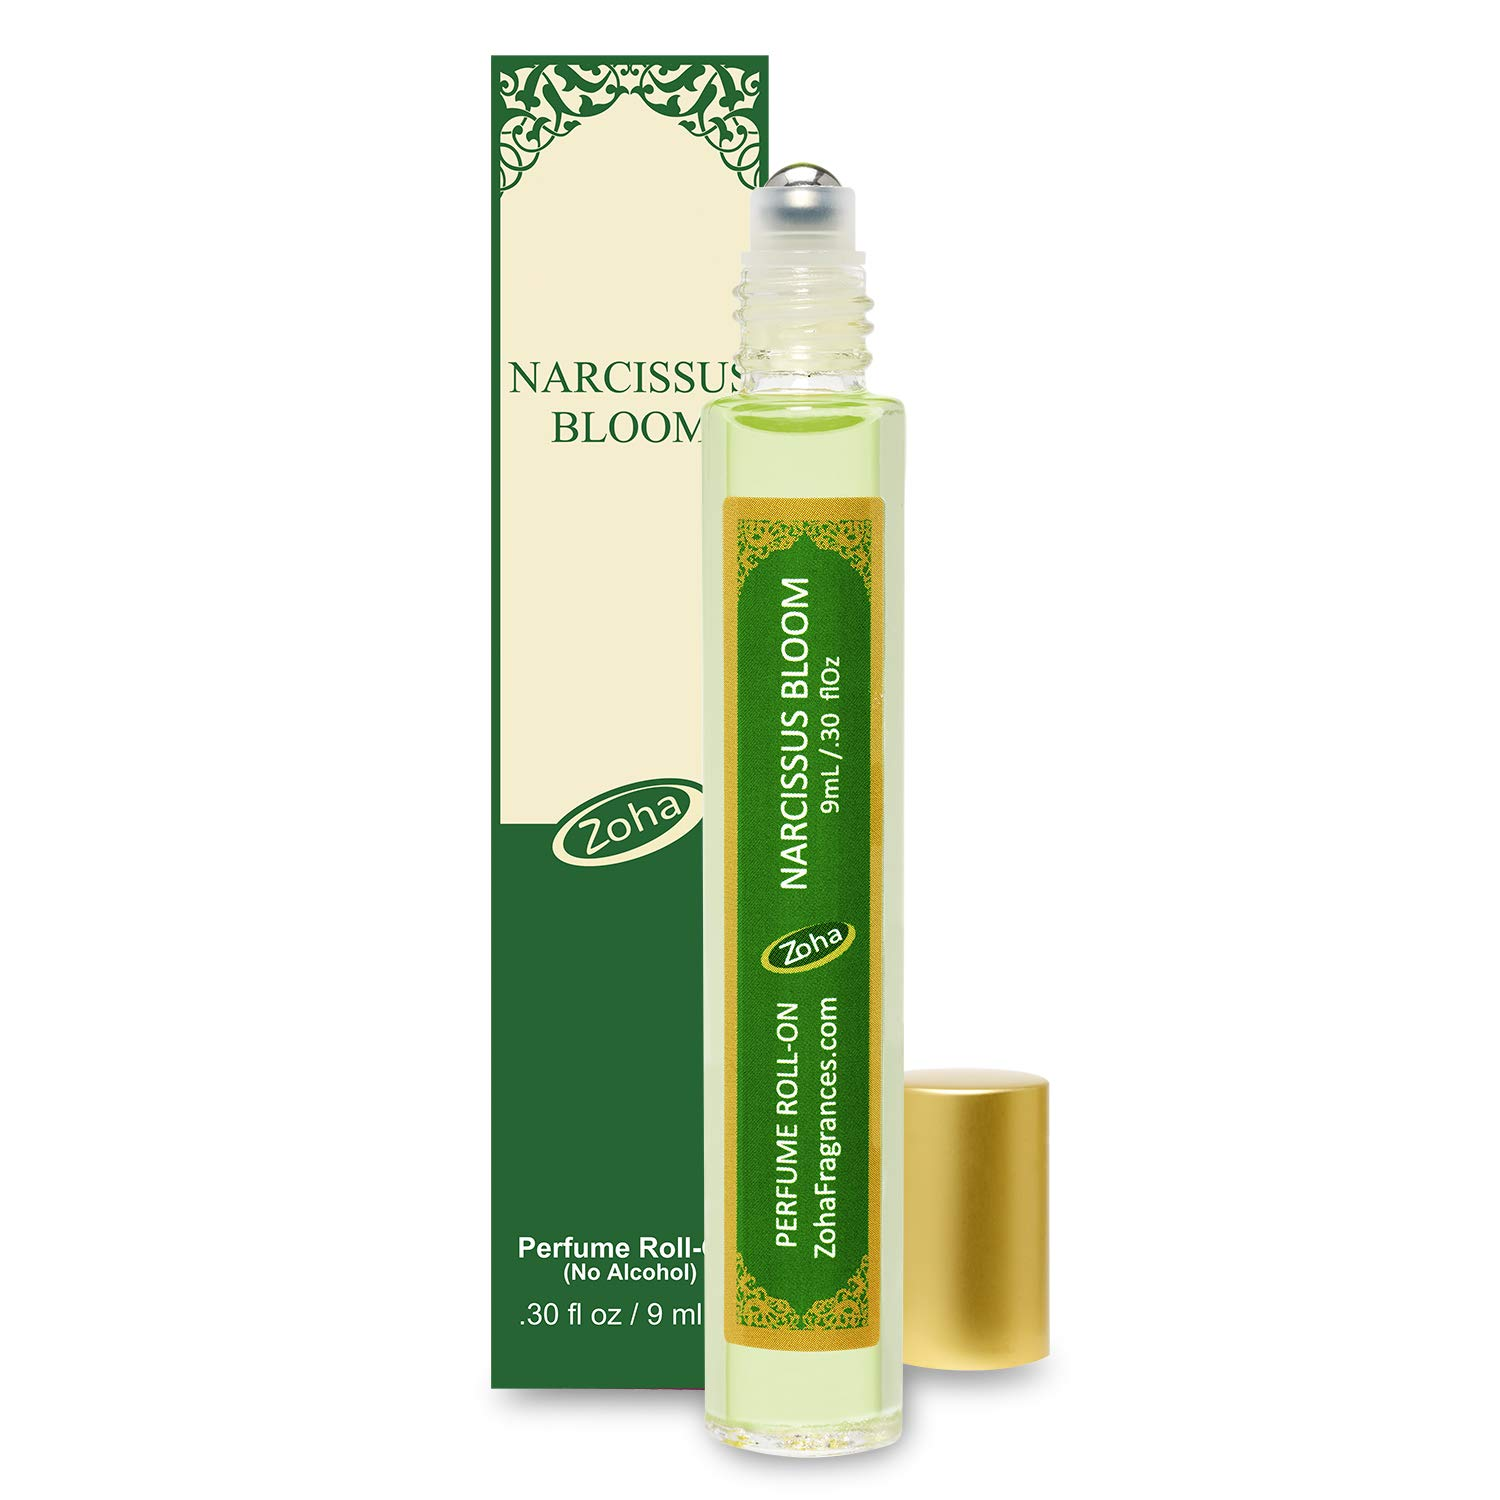 Narcissus Bloom Perfume Oil Roll-On (No Alcohol) - Essential Oils and Clean Beauty Hypoallergenic Vegan Perfumes for Women and Men by Zoha Fragrances, 9 ml / 0.30 fl Oz